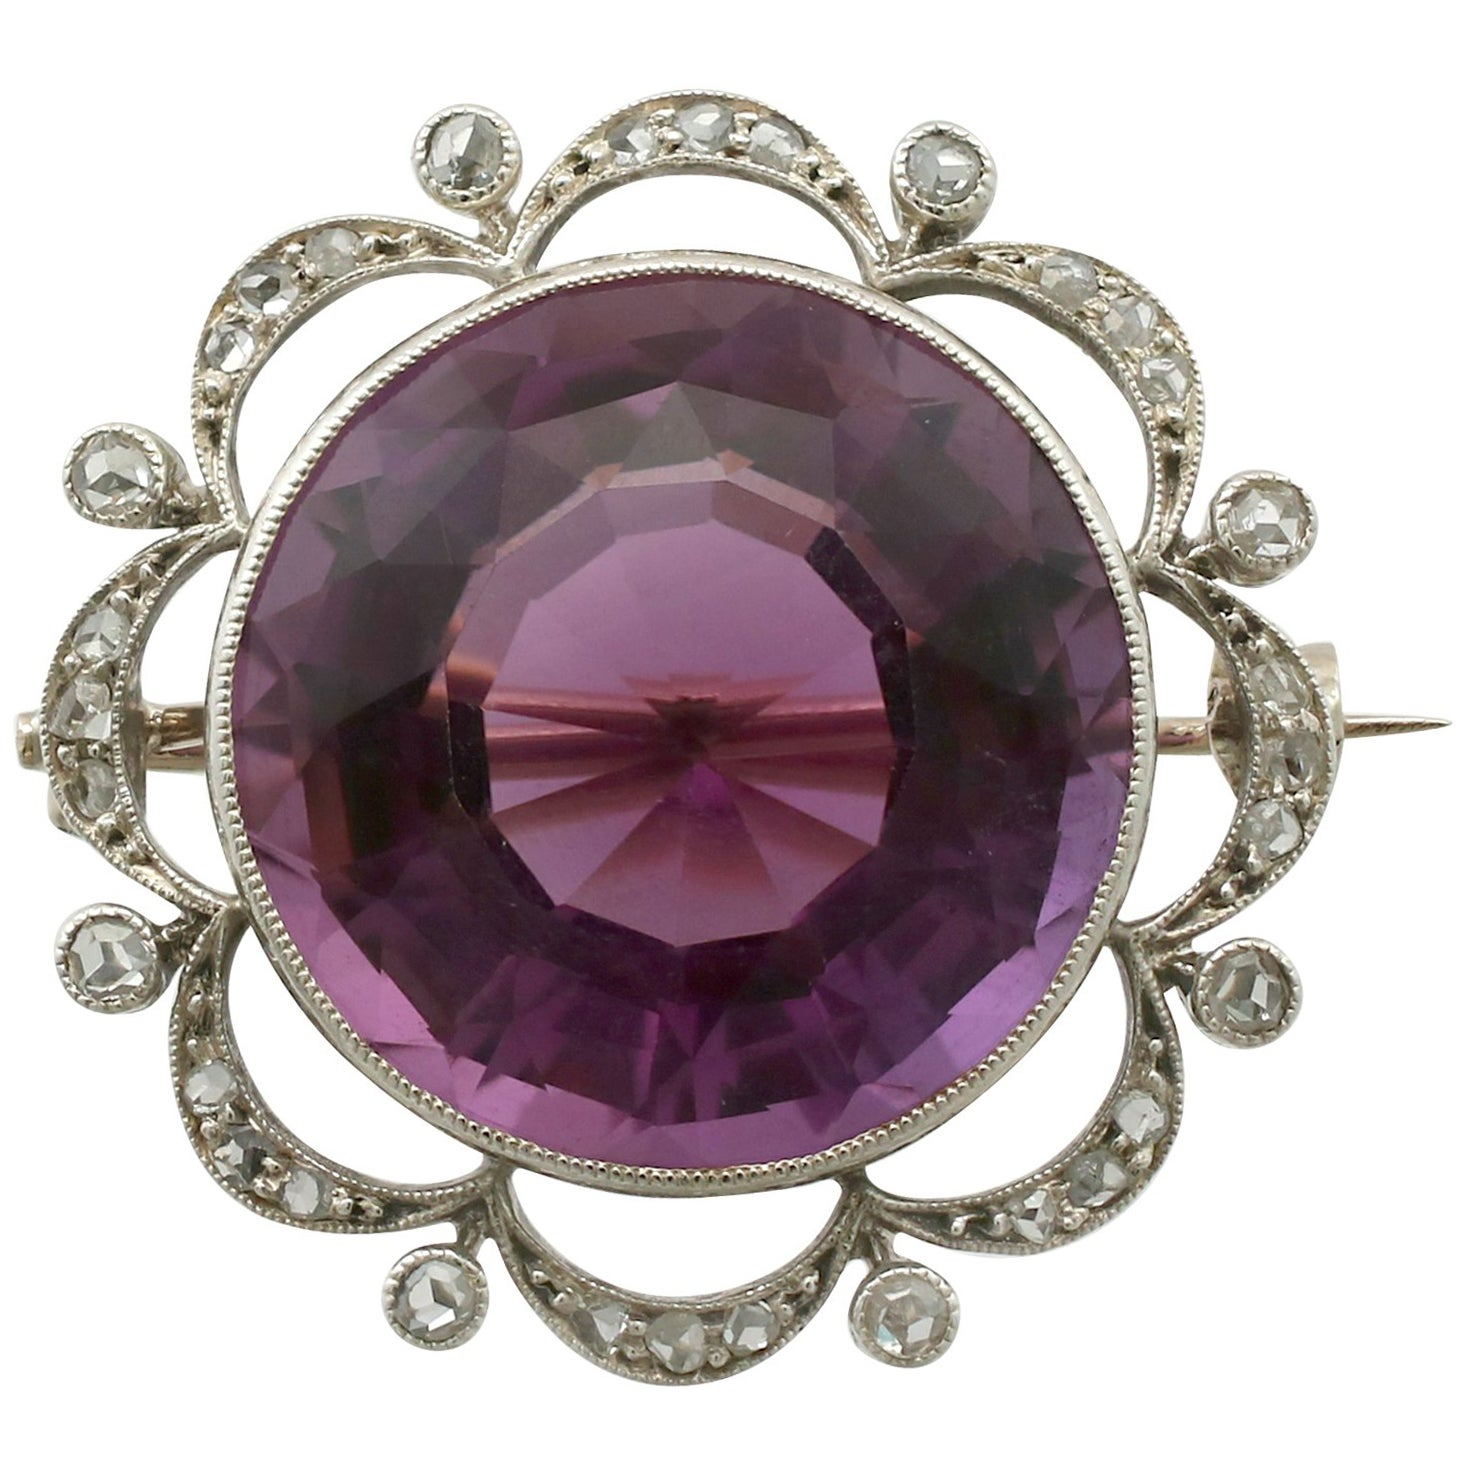 Fine Pins & Brooches Fine Jewelry Lovely Ladies/womens 9ct 9carat Gold Brooch Set With A Pearl Amethysts